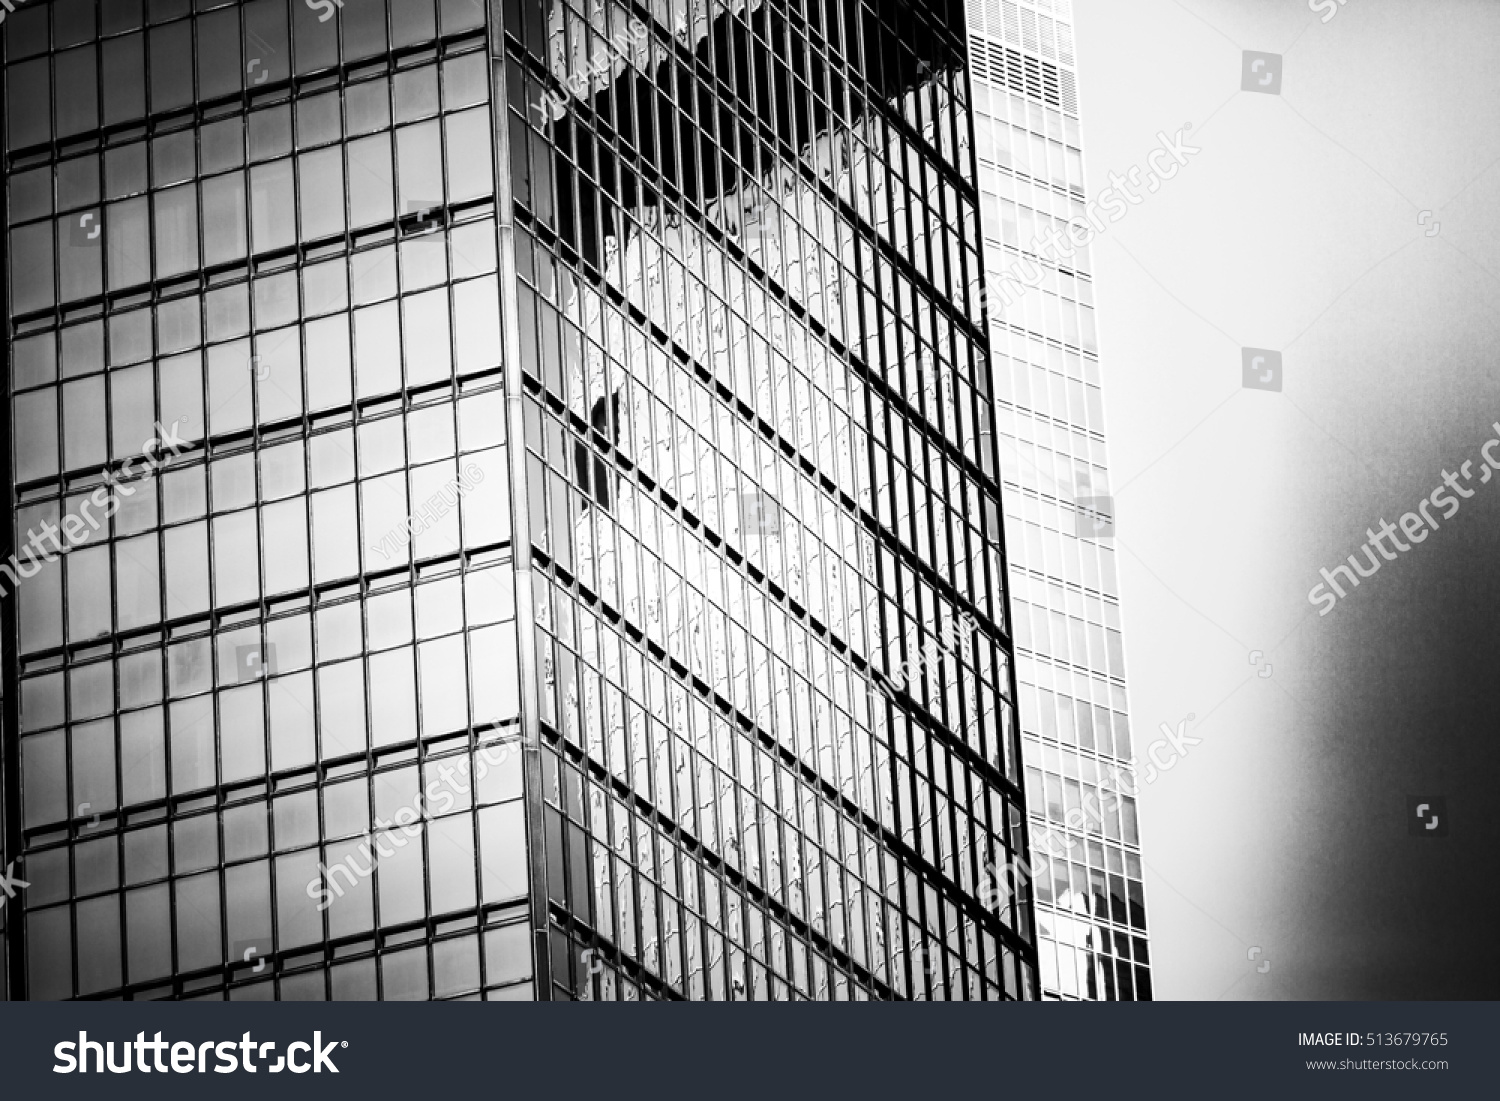 Black white images modern commercial buildings stock photo for Design your own commercial building